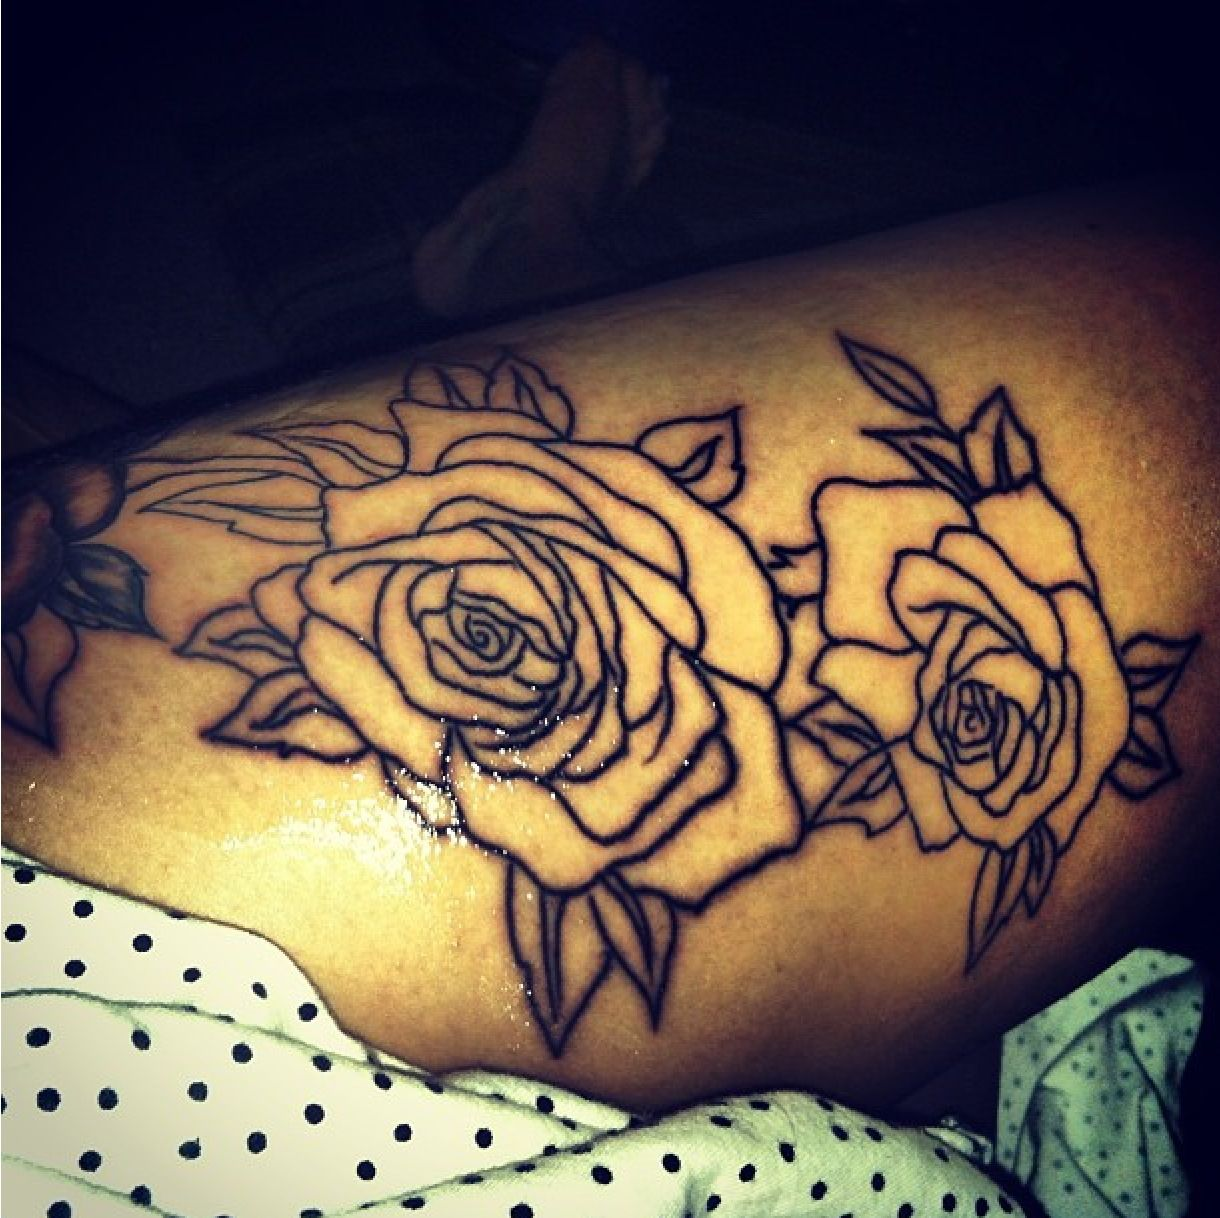 Black Ink Rose Tattoo On Girl Right Hip: New Rose Thigh Tattoo